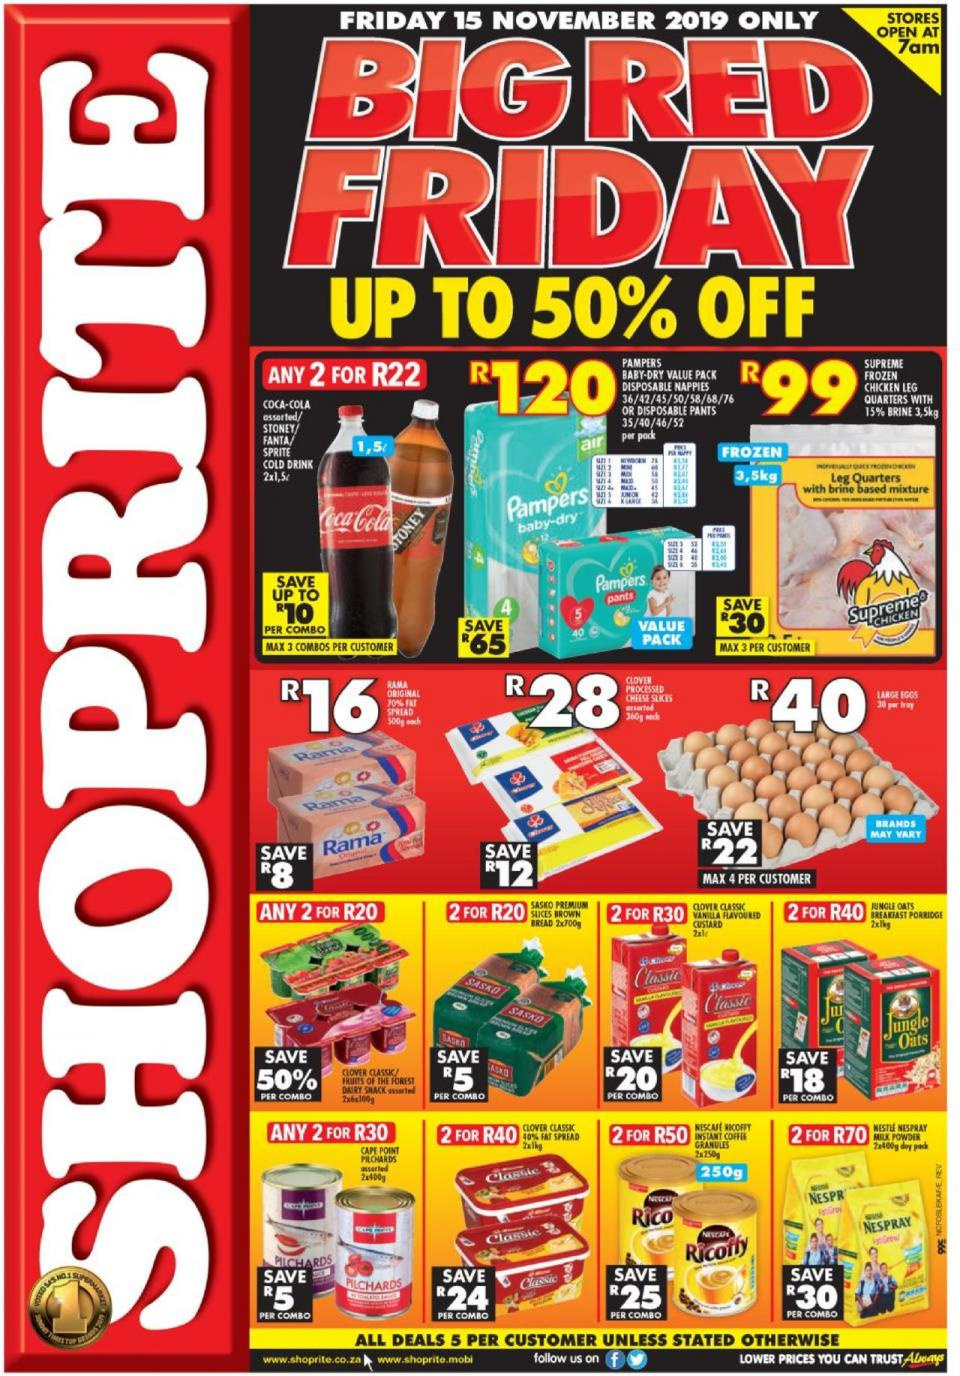 shoprite specials northern cape black friday 15 november 2019